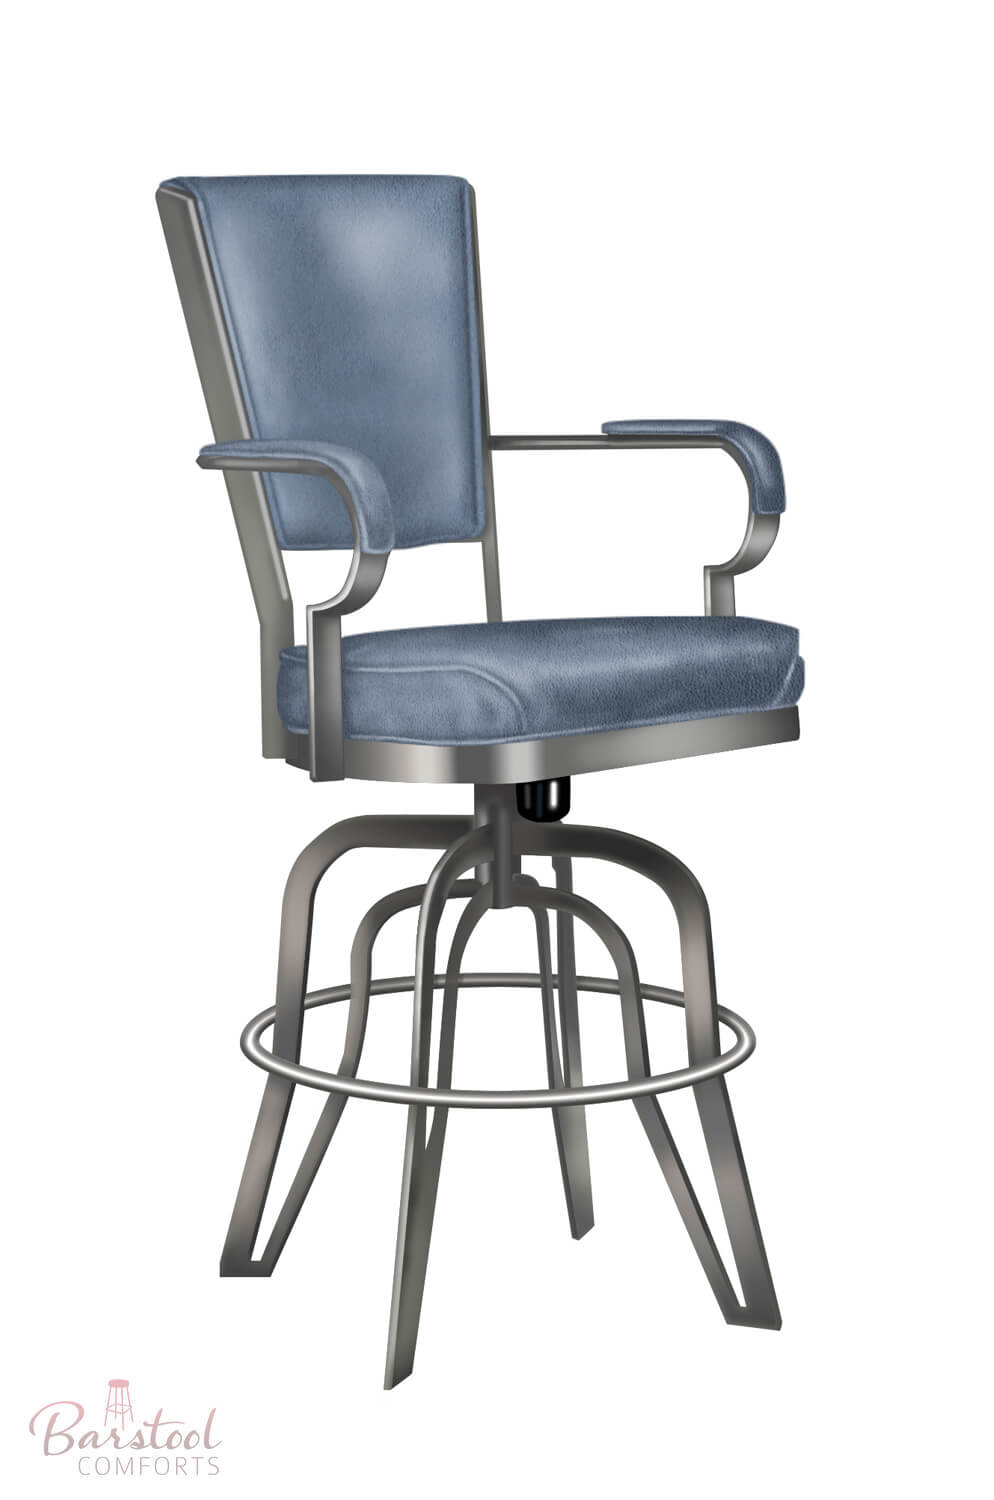 Metal Chairs Lisa Furniture 2545 Rocking Tilt Swivel Bar Stool